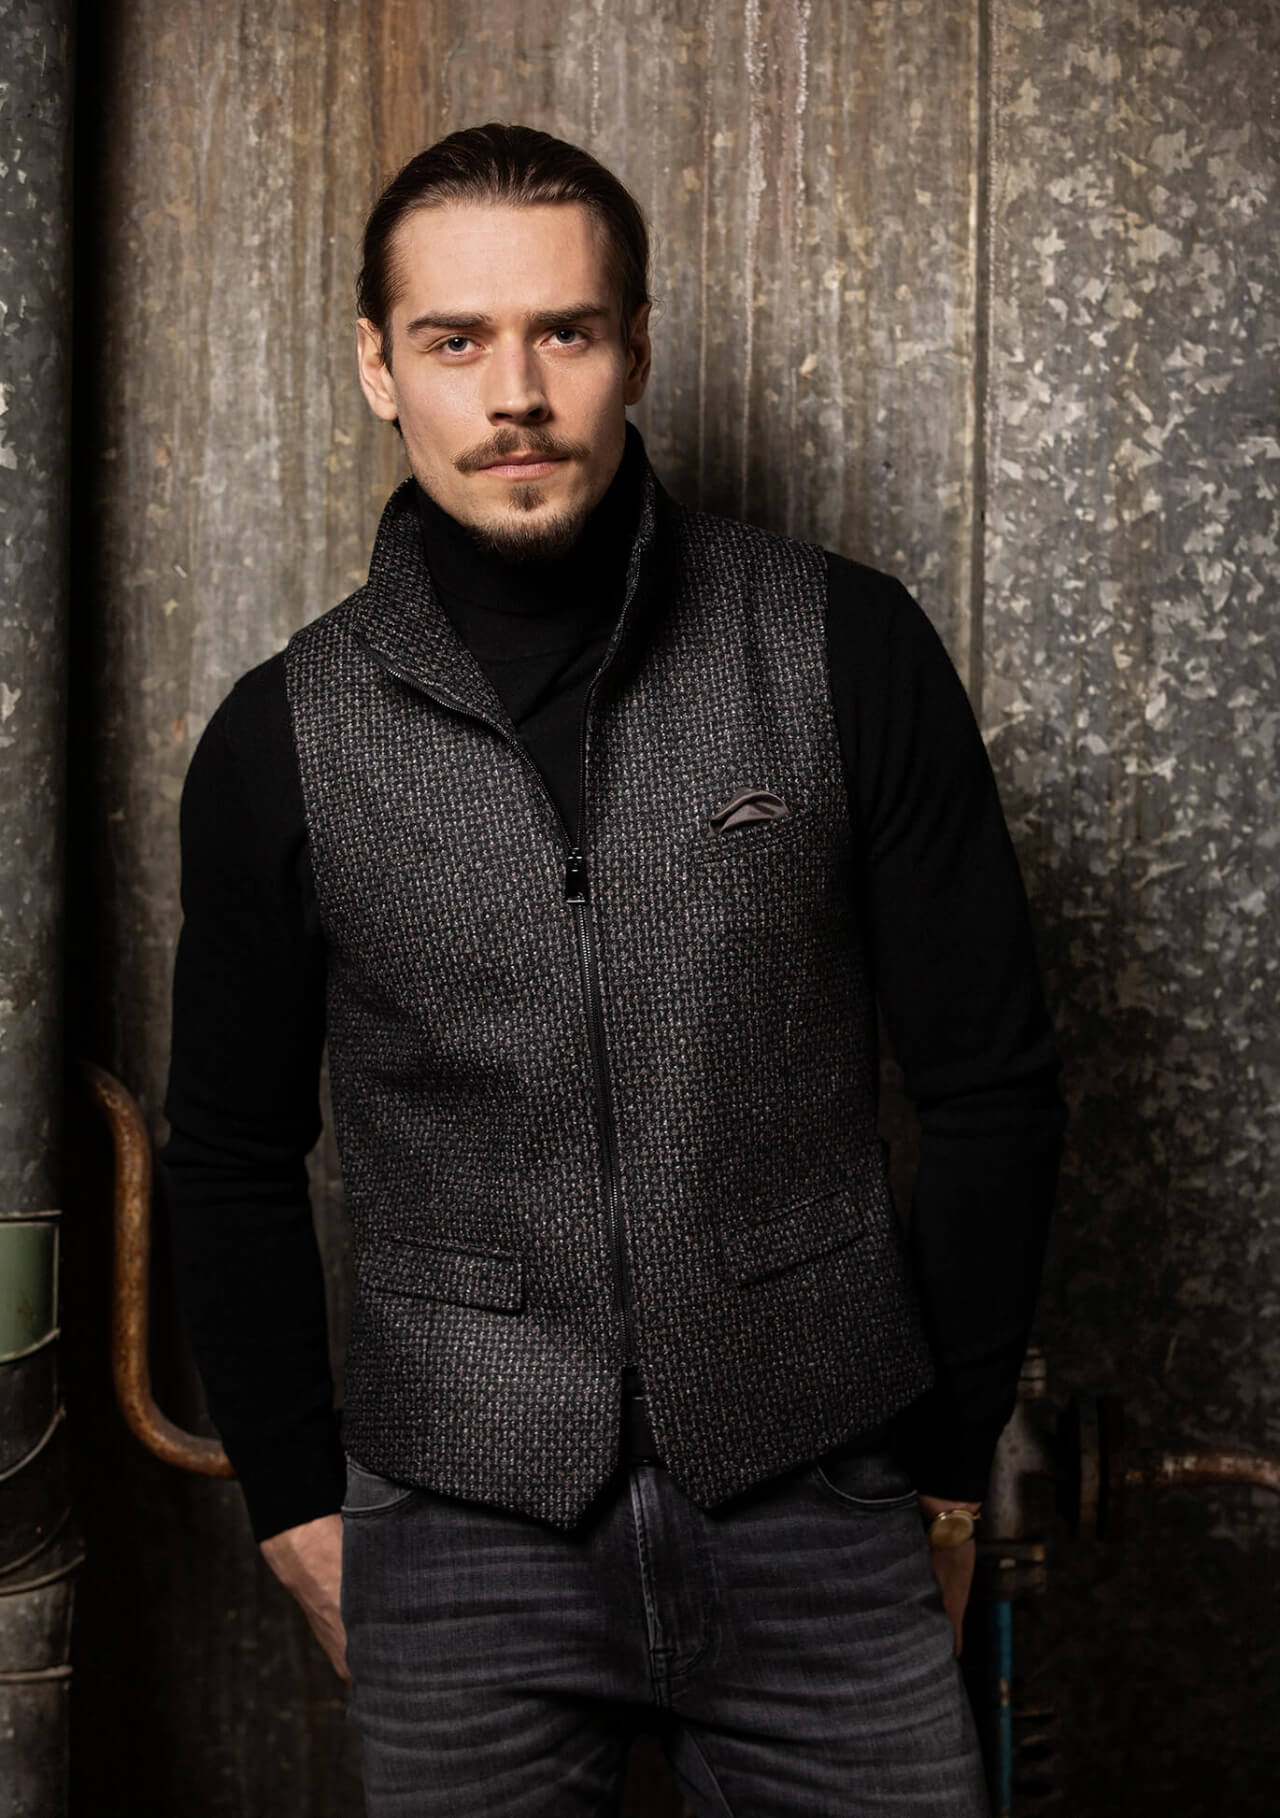 Fashionable, chic and casual men's vest gilet from DORNSCHILD with zipper black gray patterned made of the finest Italian fabric. Premium quality and handmade in Europe.